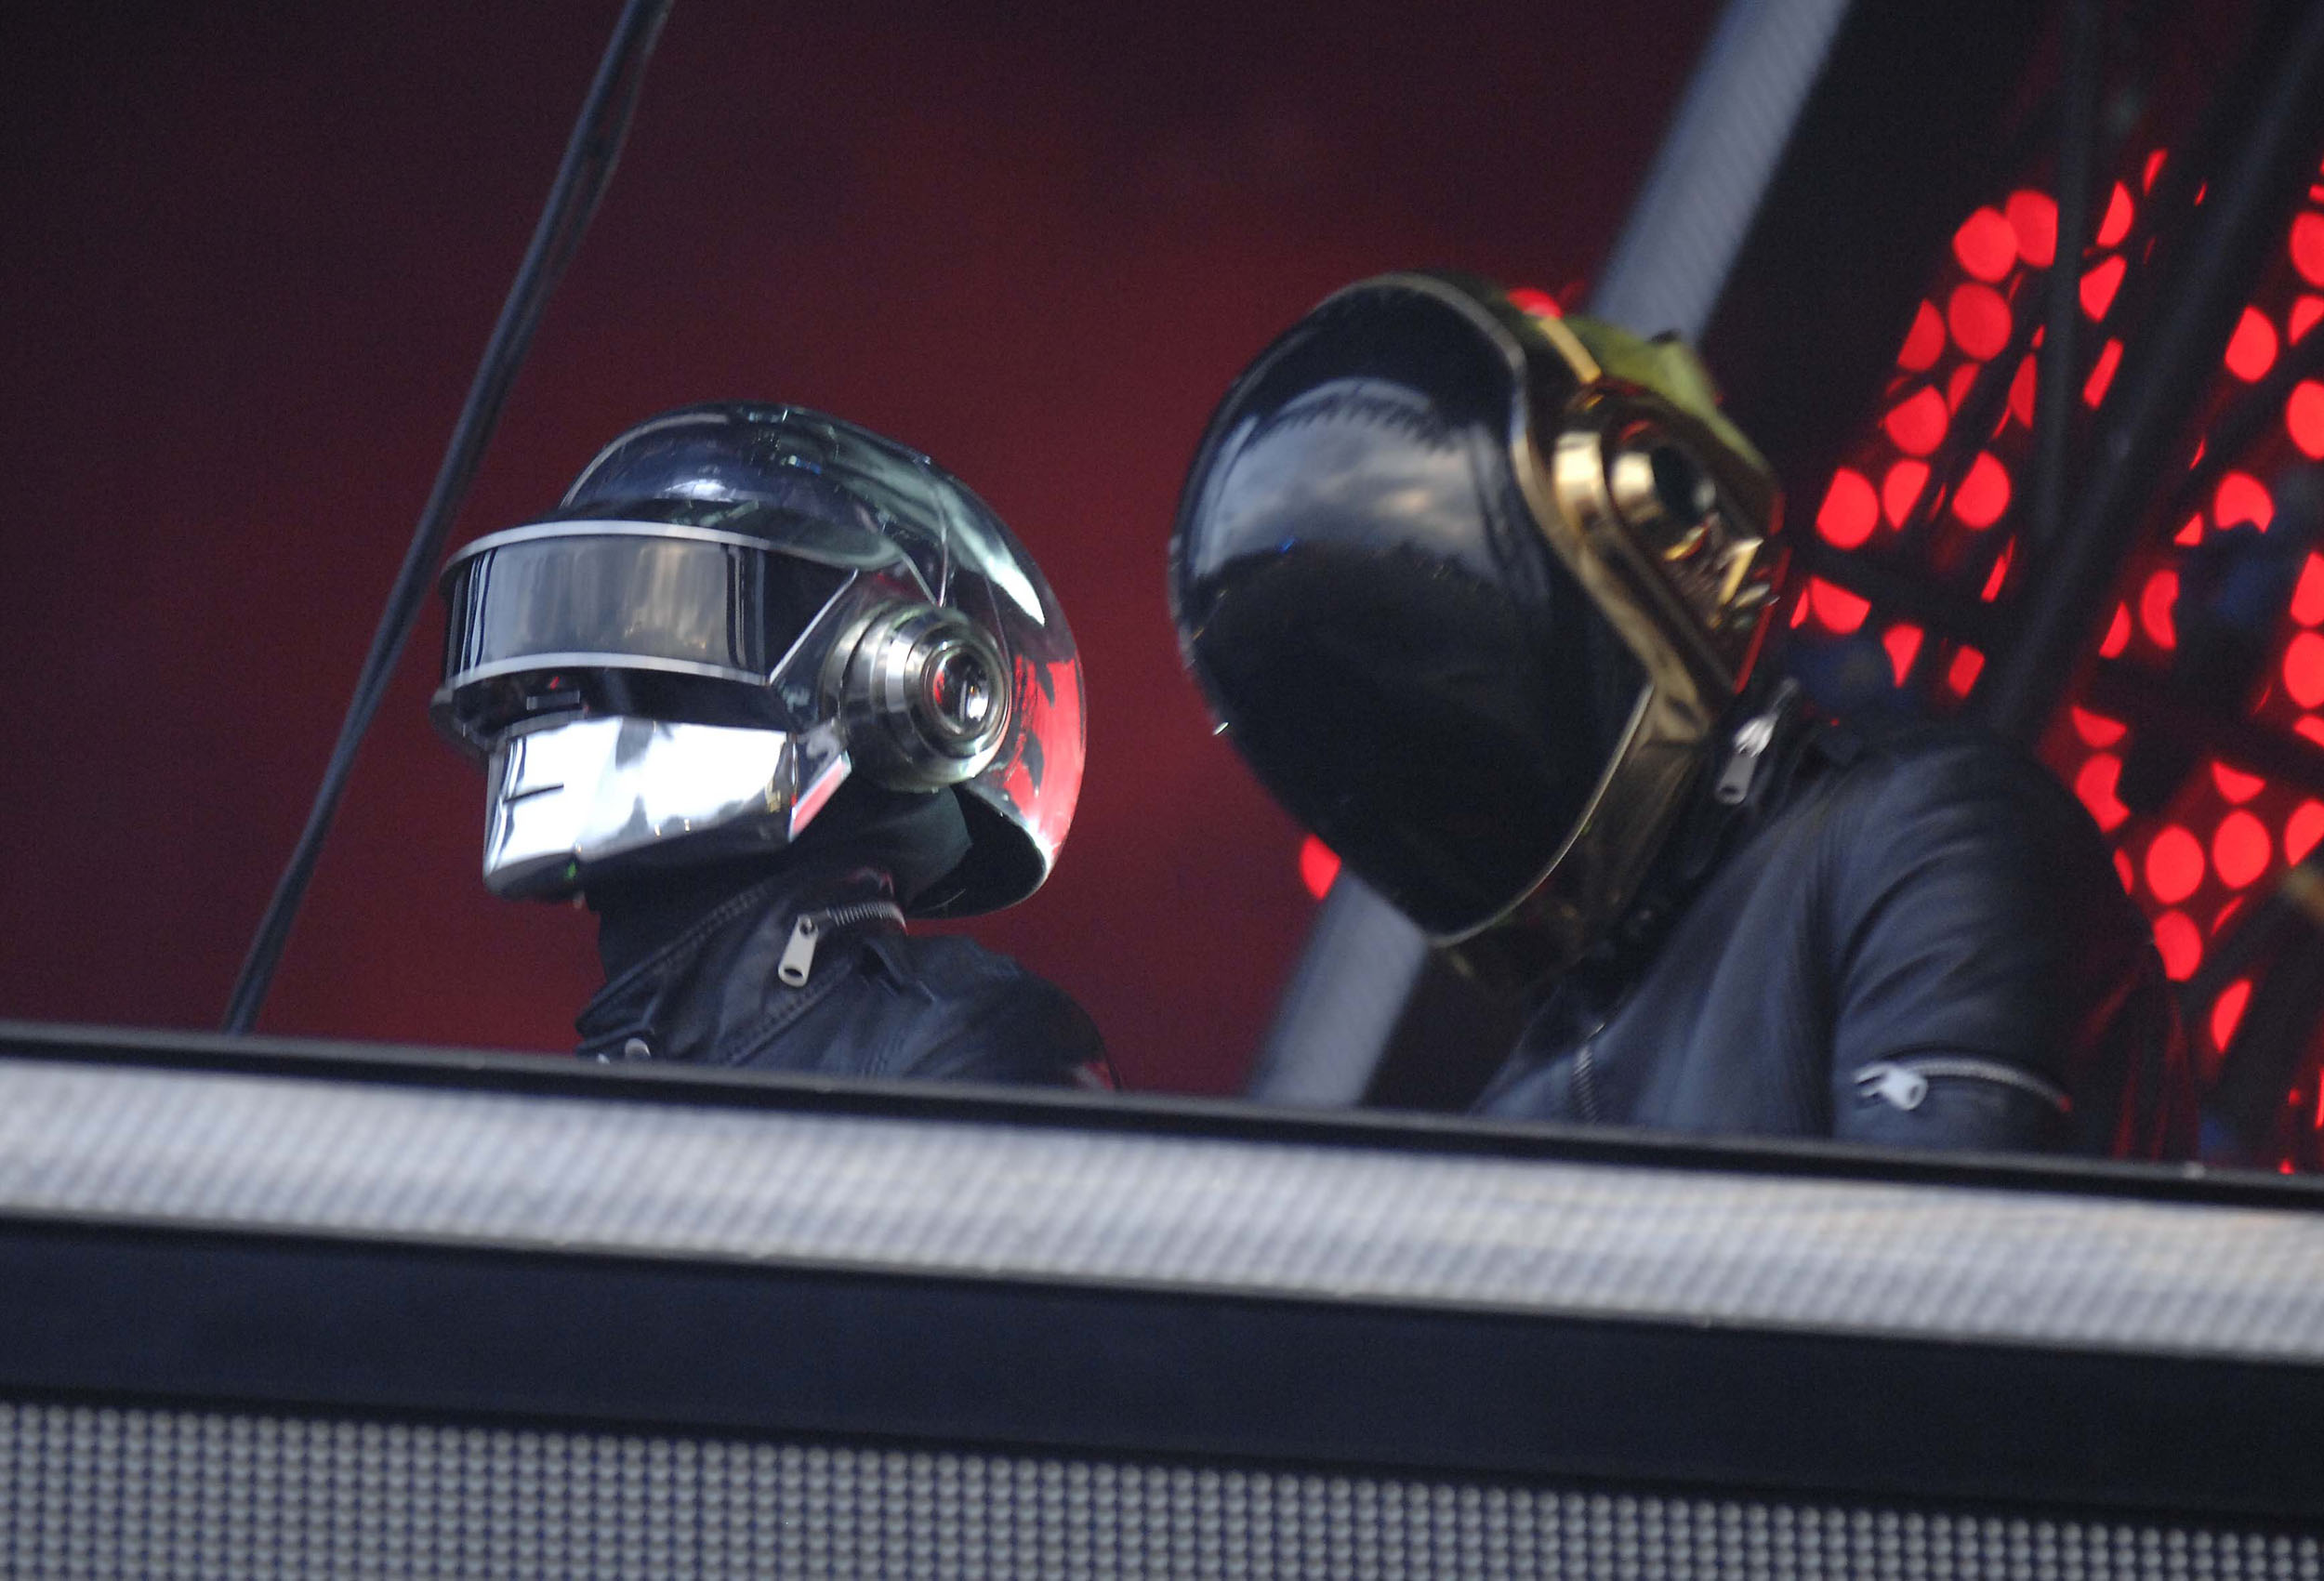 Daft Punk on stage